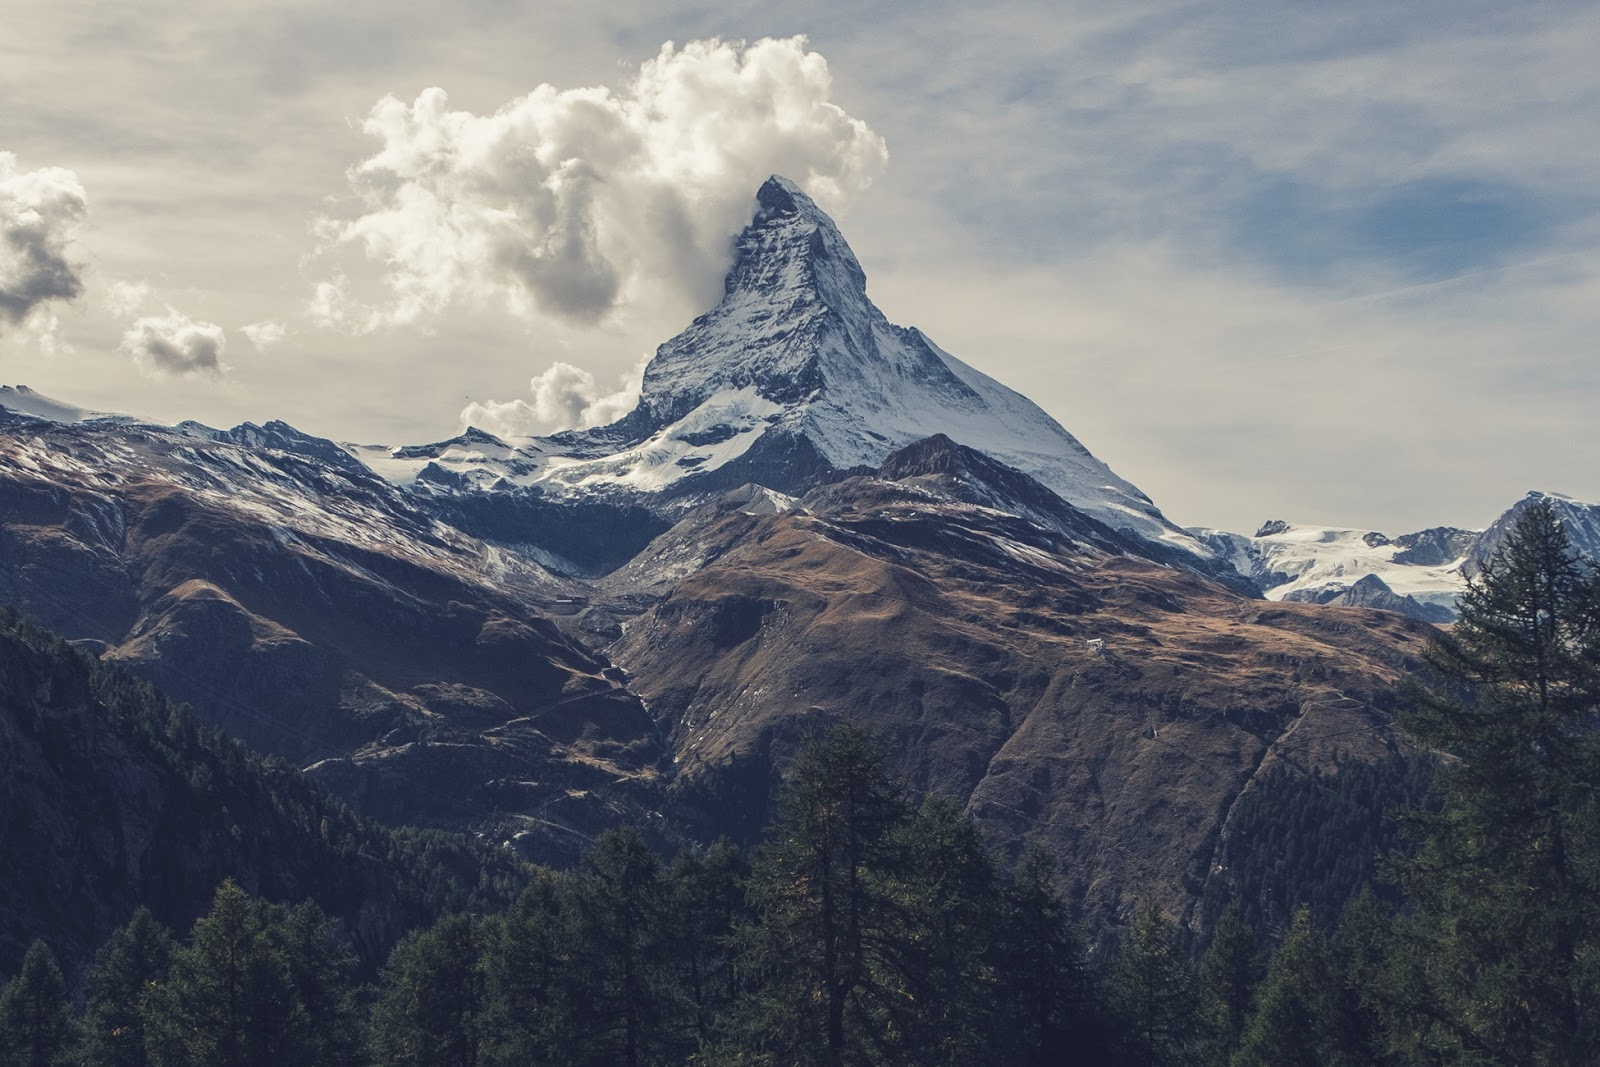 snowy mountain and clouds